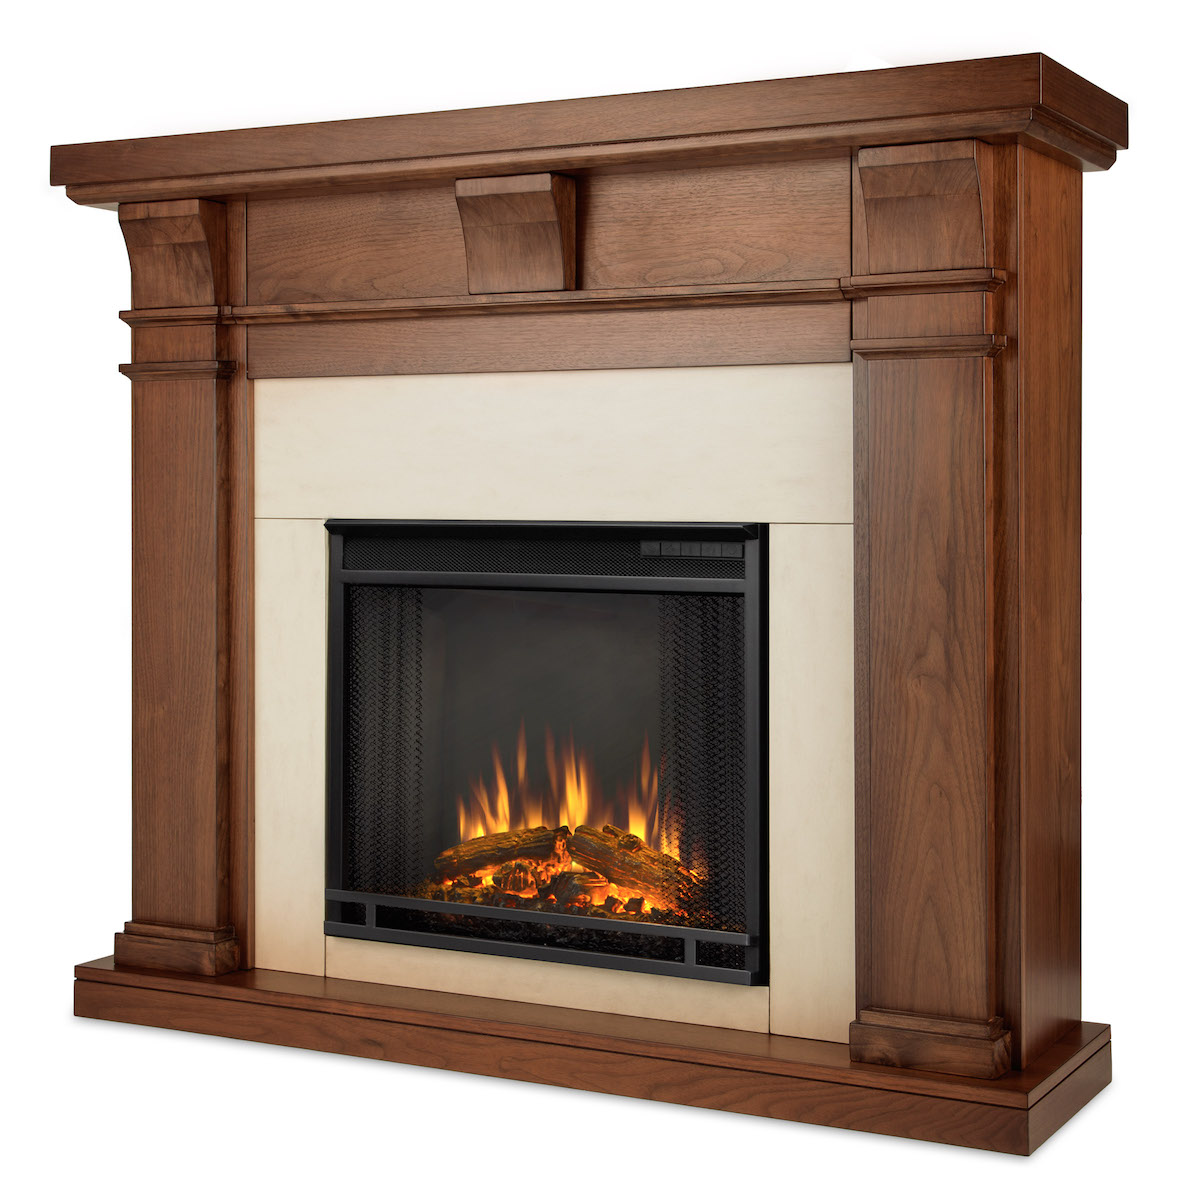 Real Flame Porter Electric Fireplace in Walnut